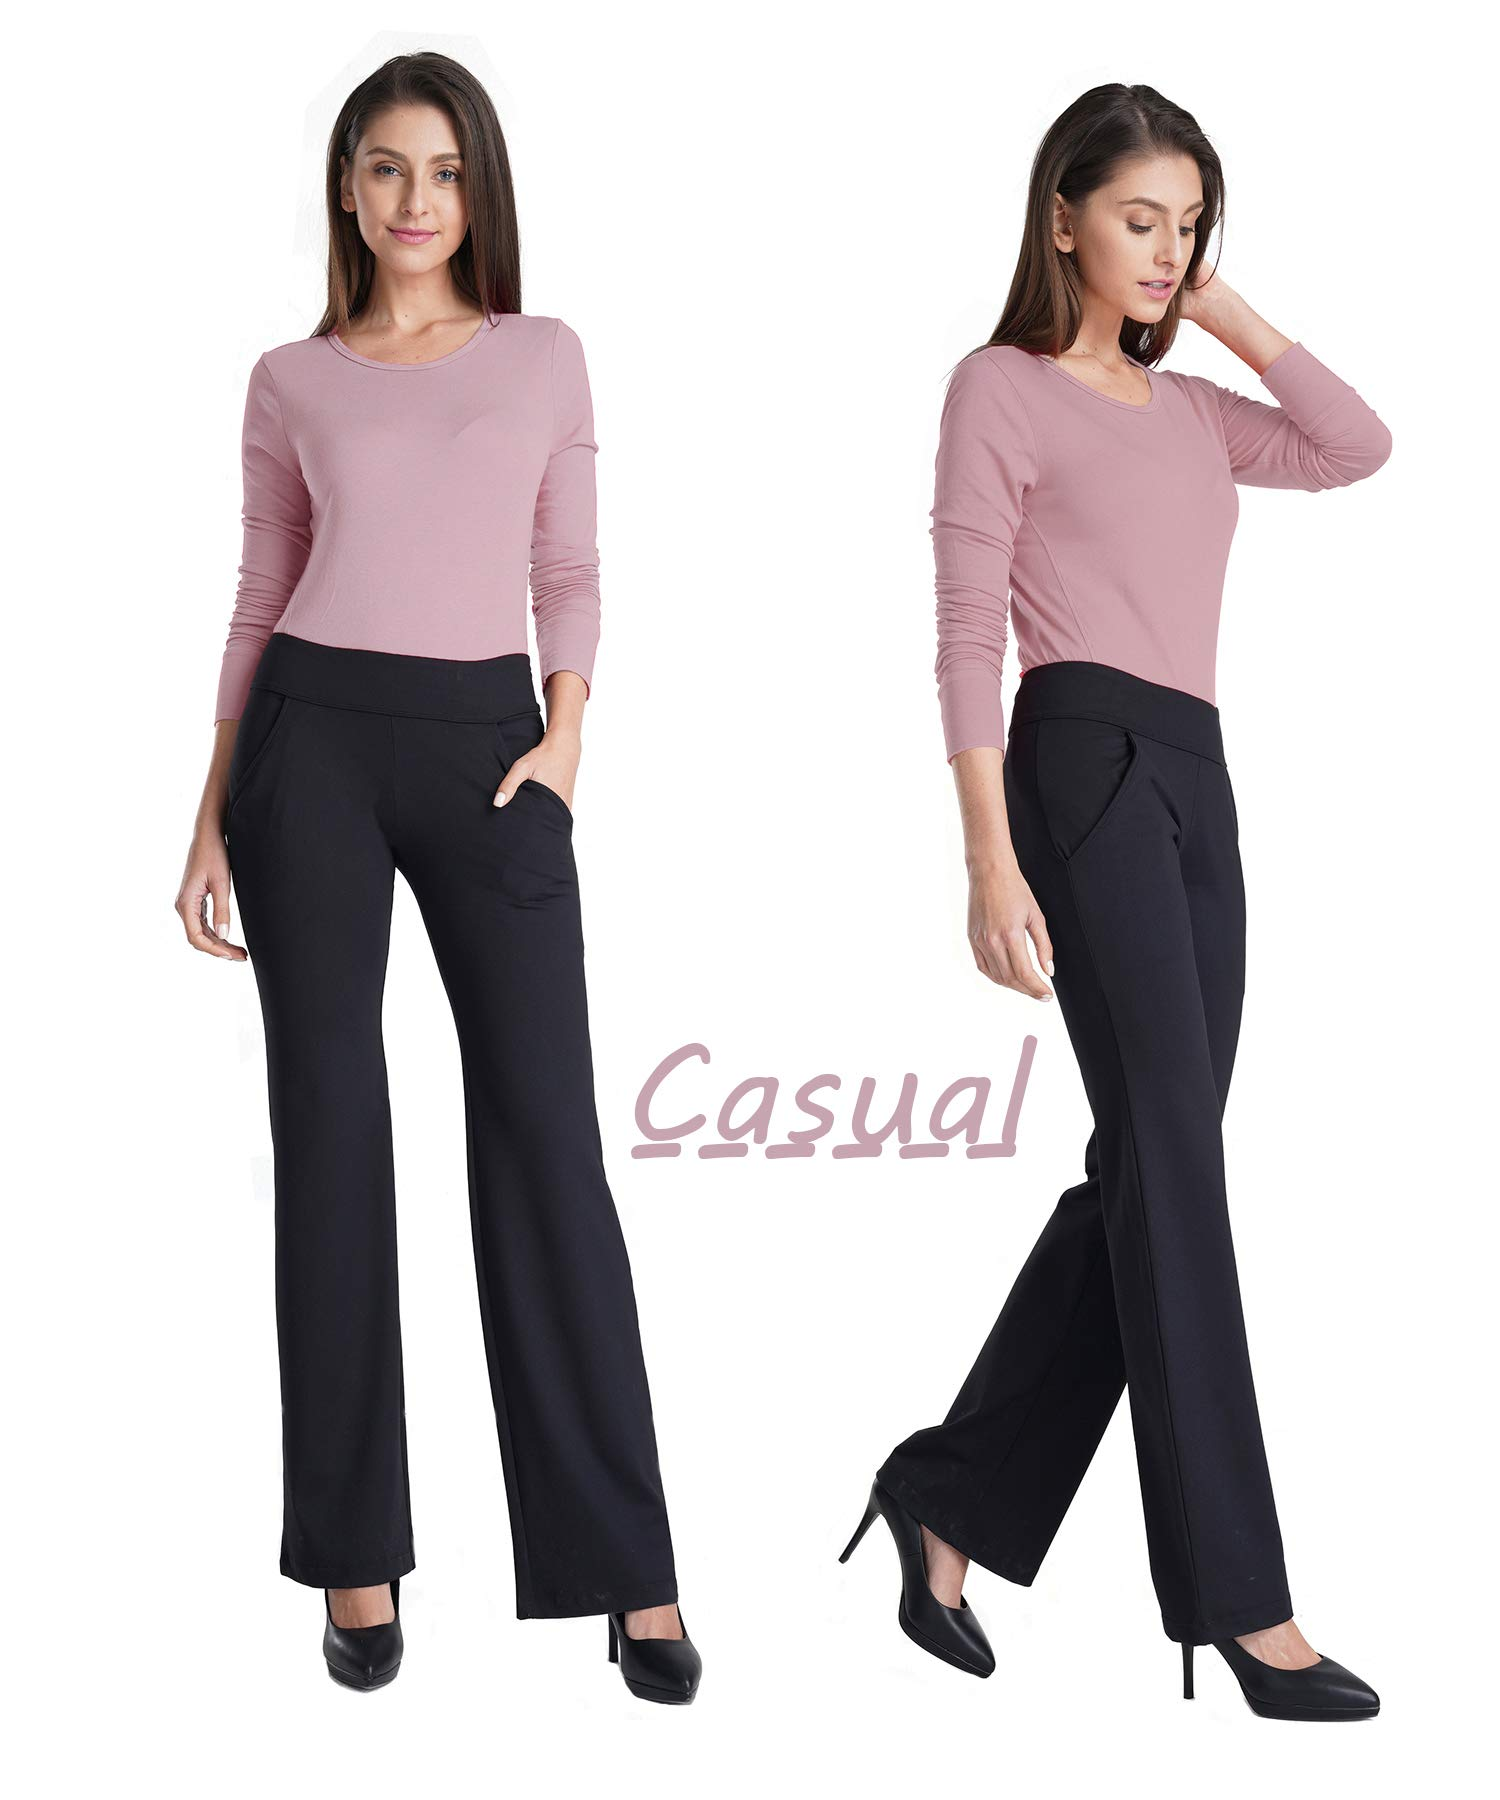 3ee7797c6c Bamans Womens Bootcut Yoga Pants with Pockets Tummy Control Petite to Plus  Size Flared Stretch Workout Work Pants